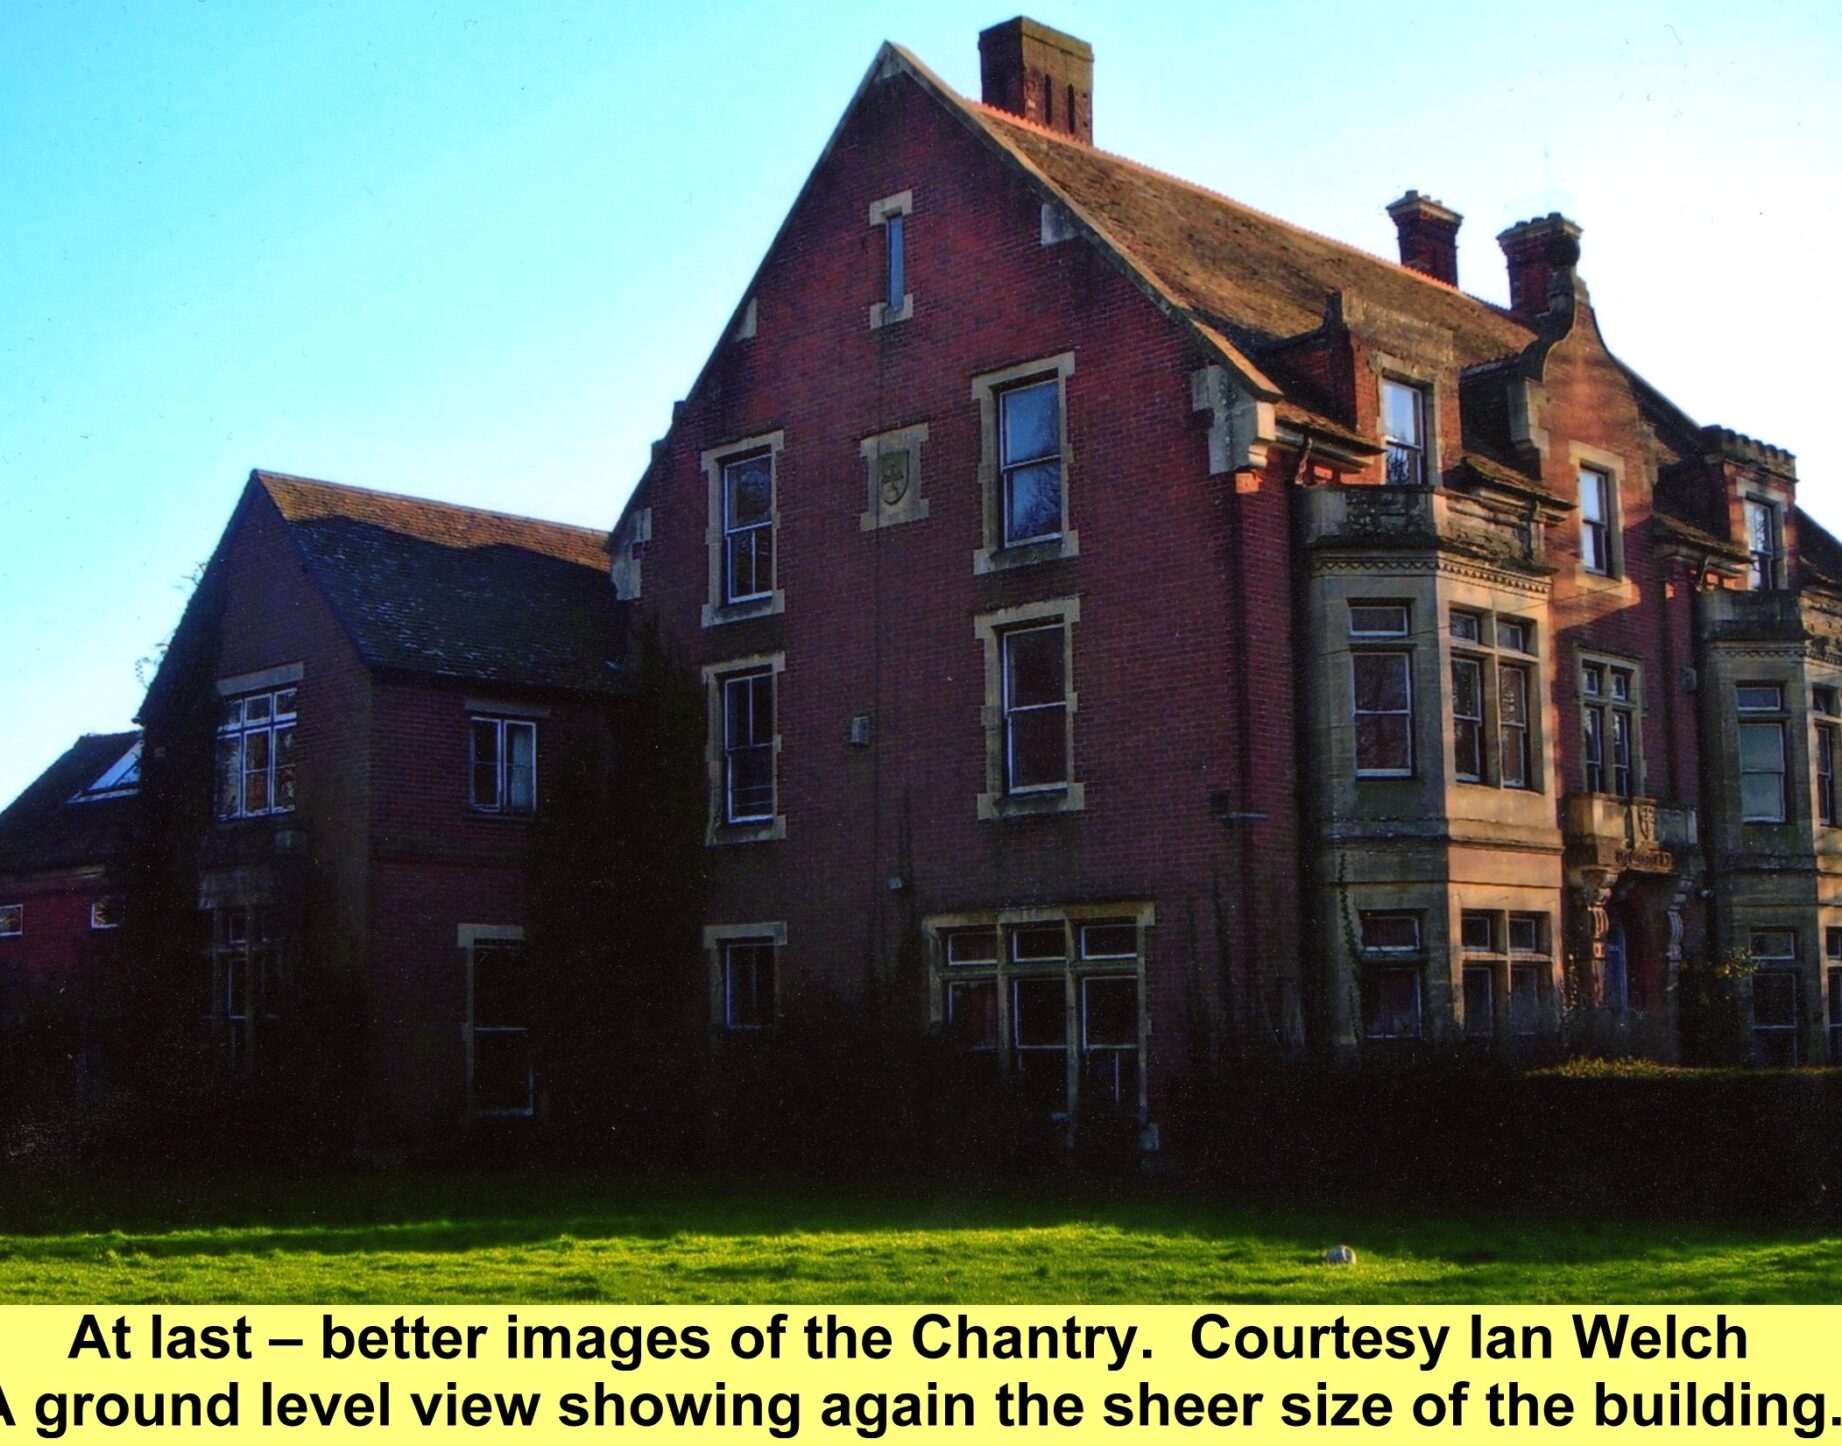 WESTBOURNE HISTORY PHOTO, THE CHANTRY FARM SIDE VIEW